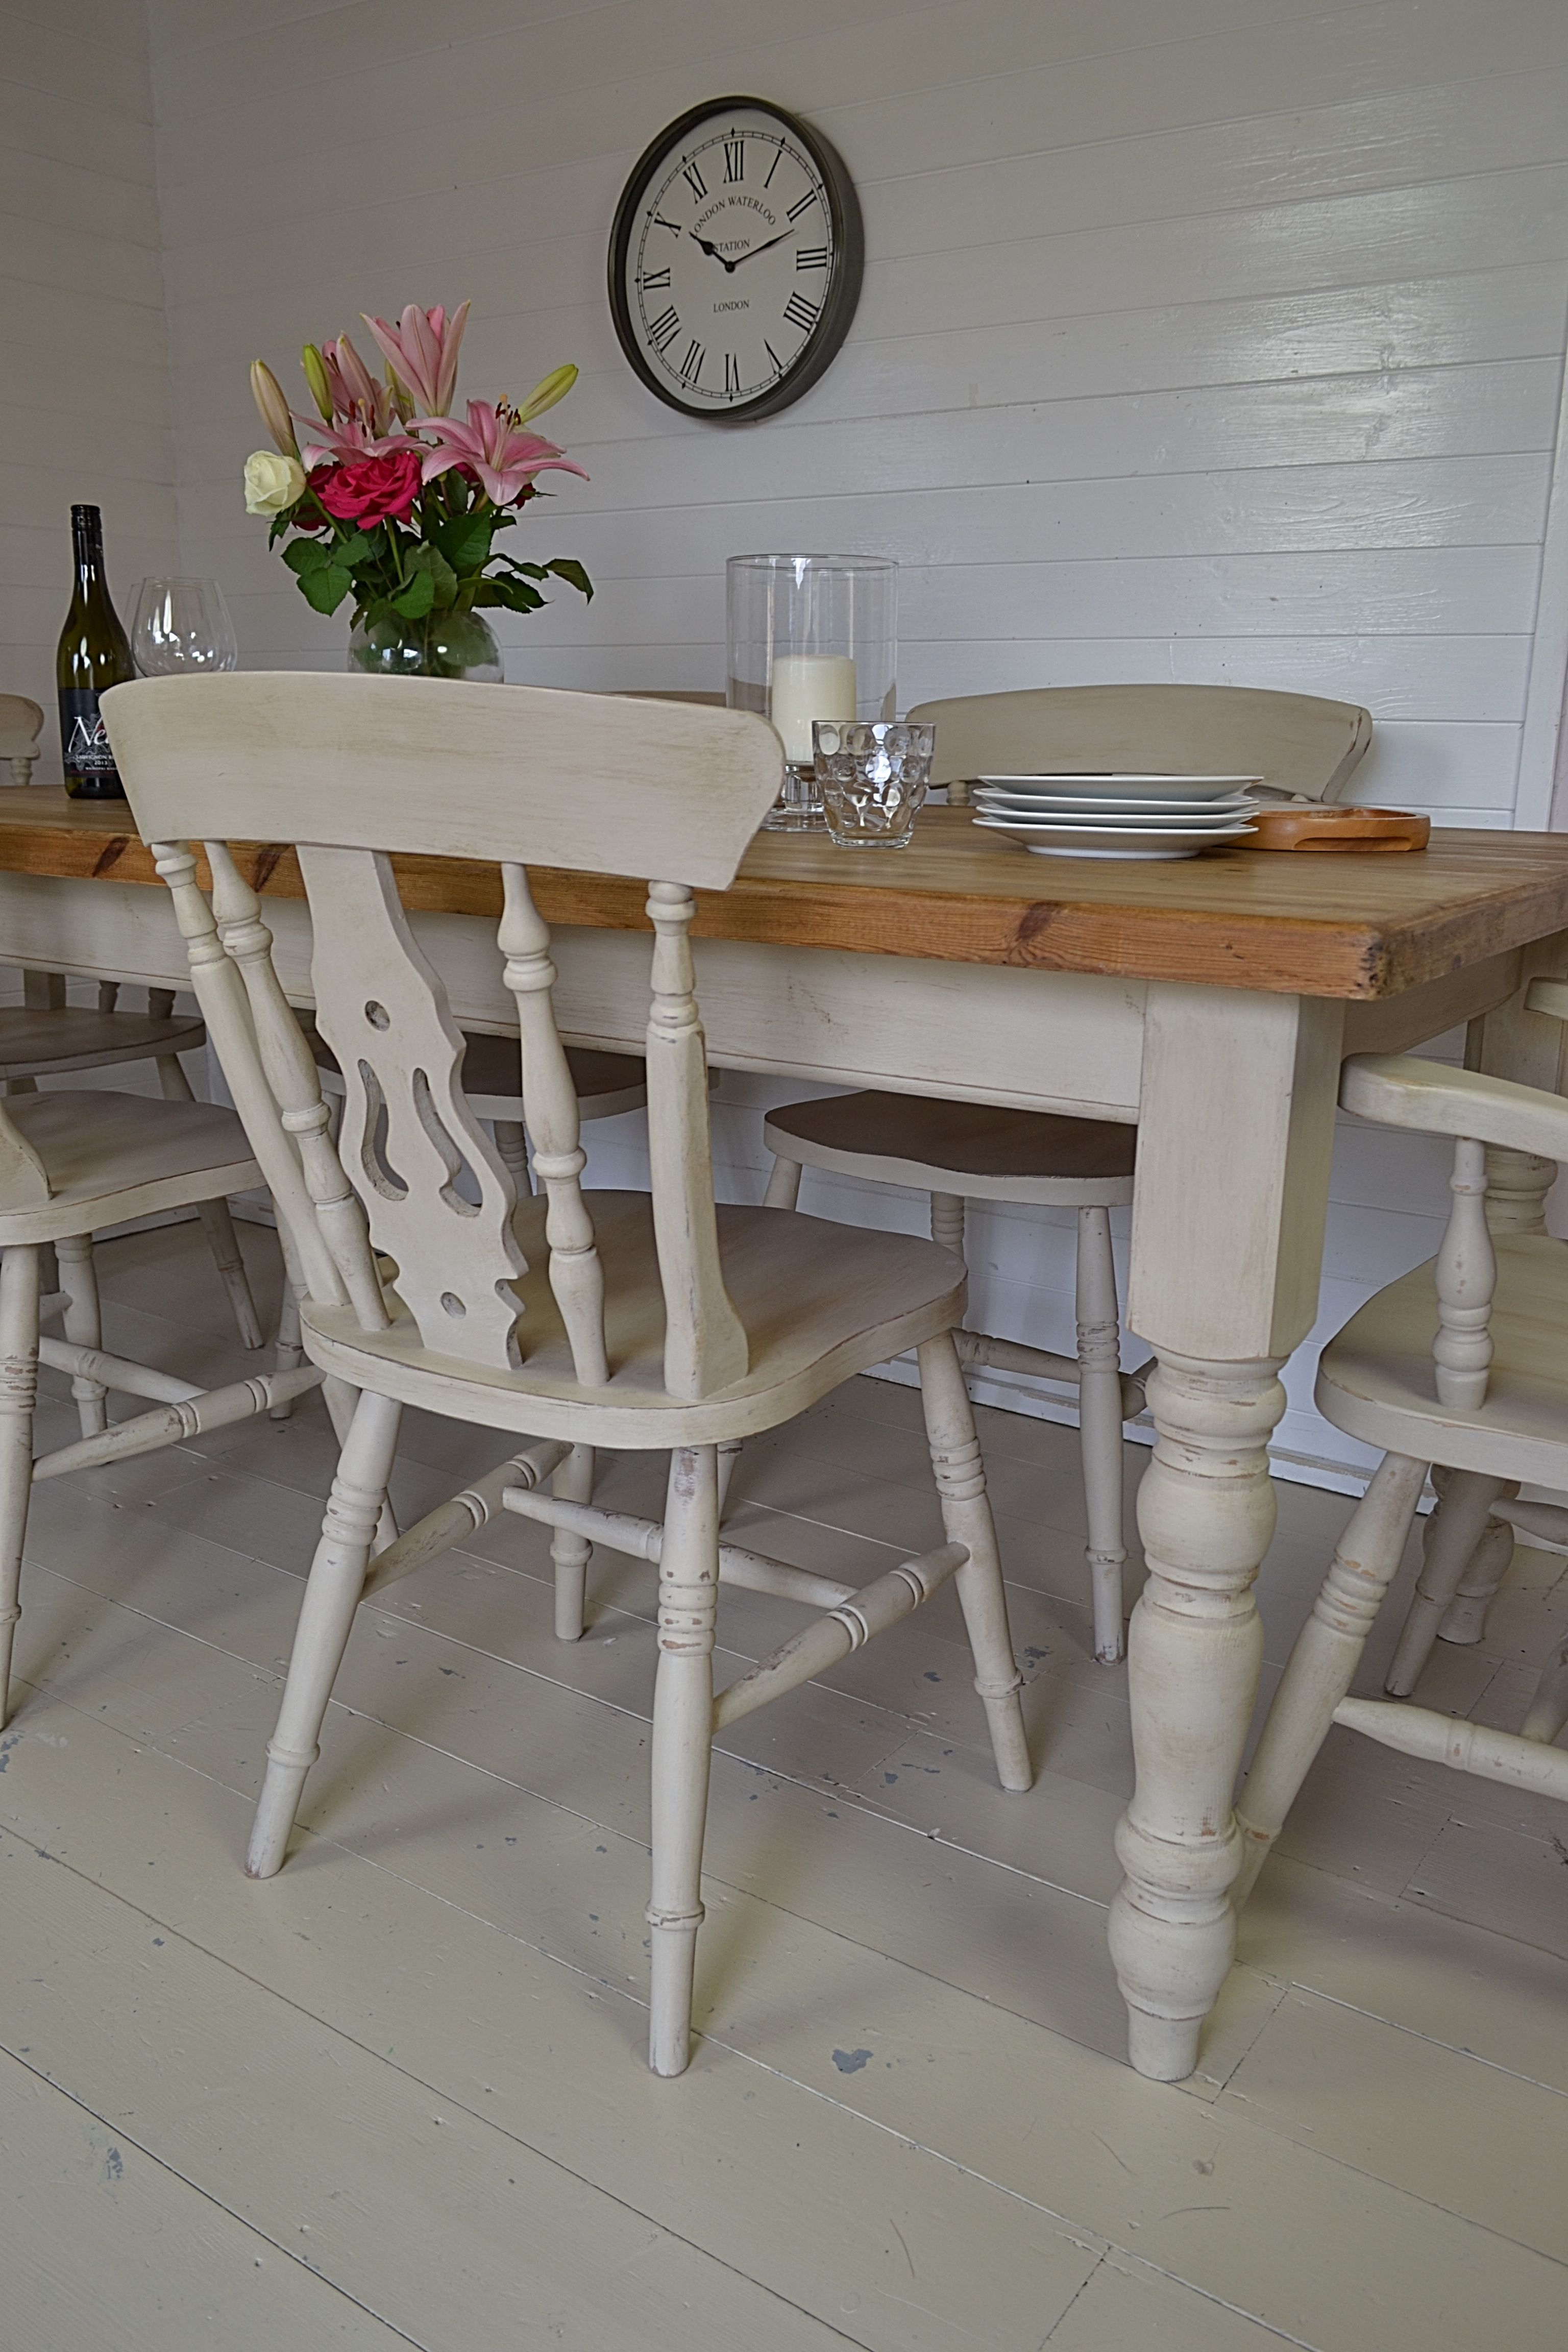 This large farmhouse dining set has a substantial table